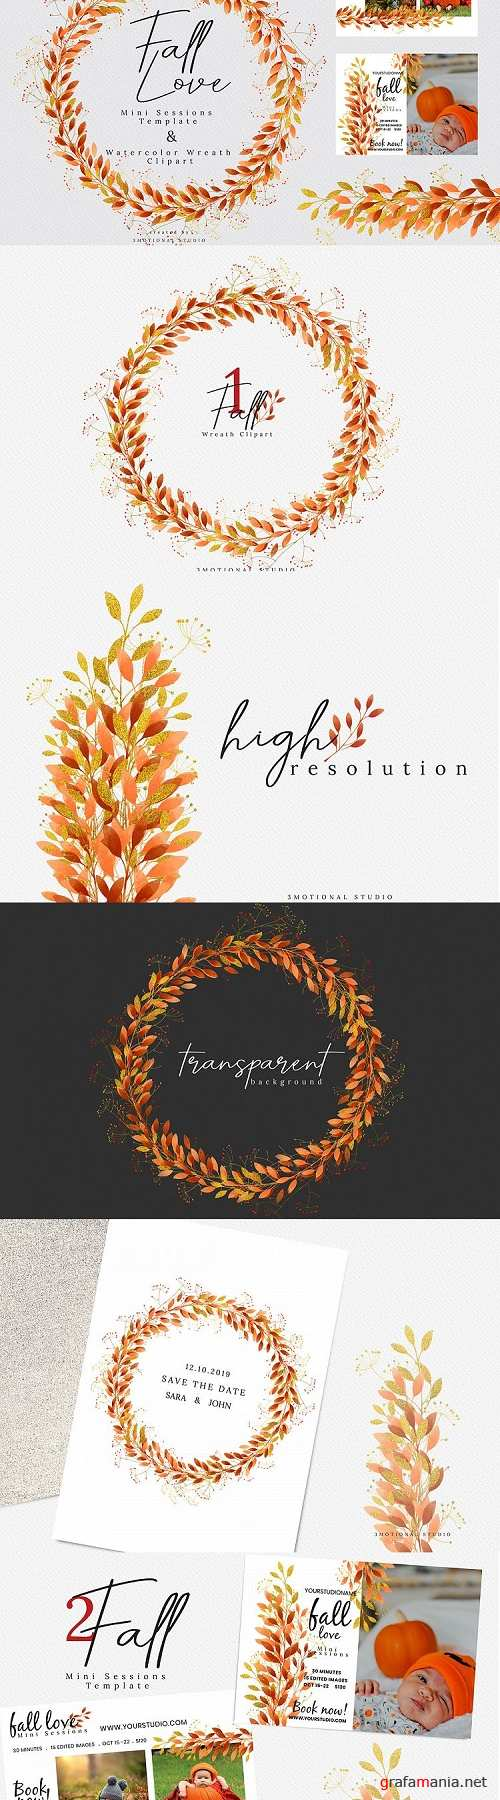 Fall Love Mini Sessions Template and Wreath Clip-art - 368284